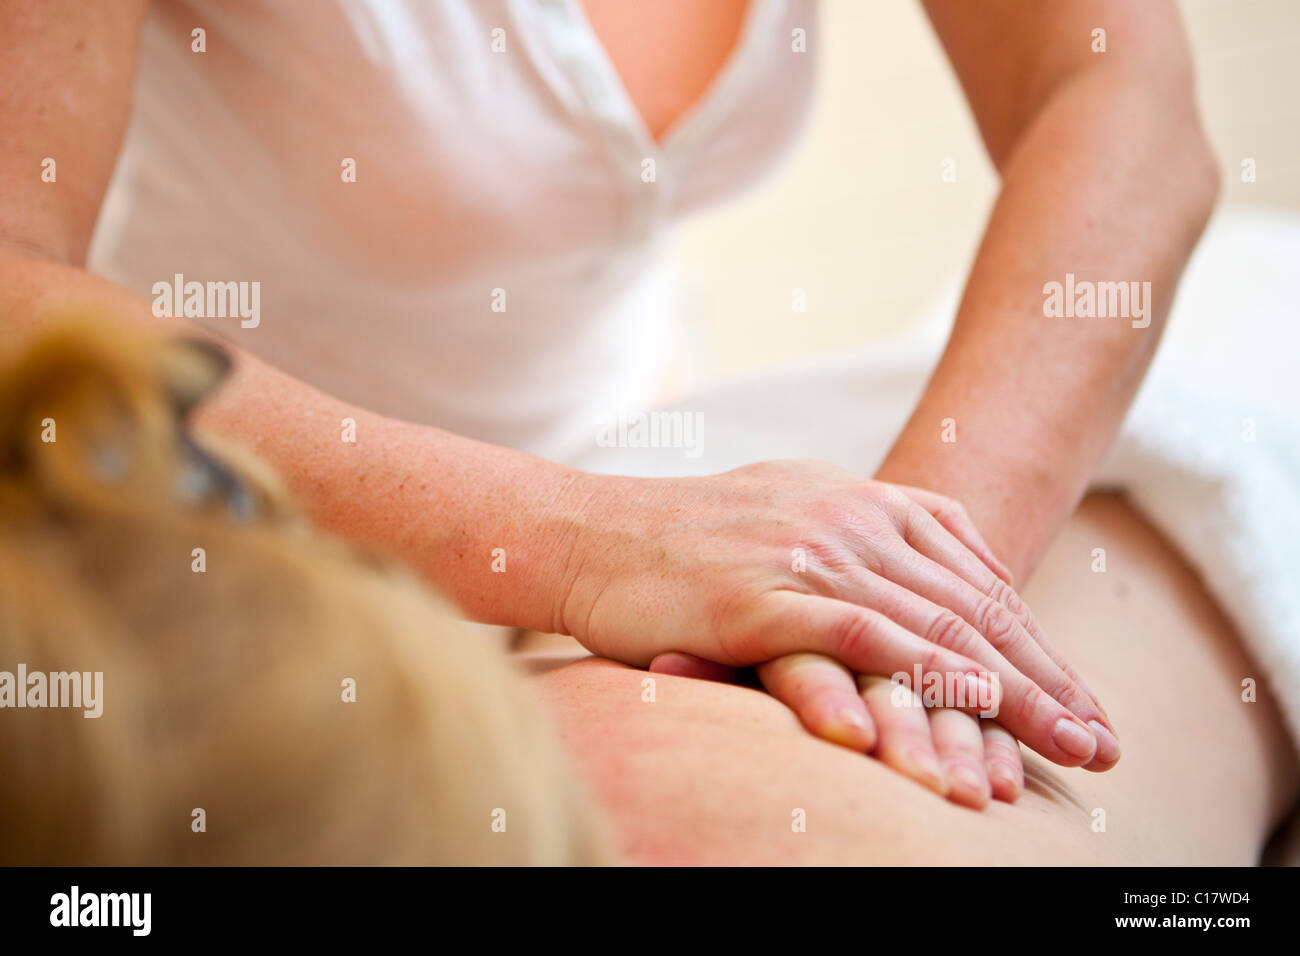 Massage therapy - Stock Image